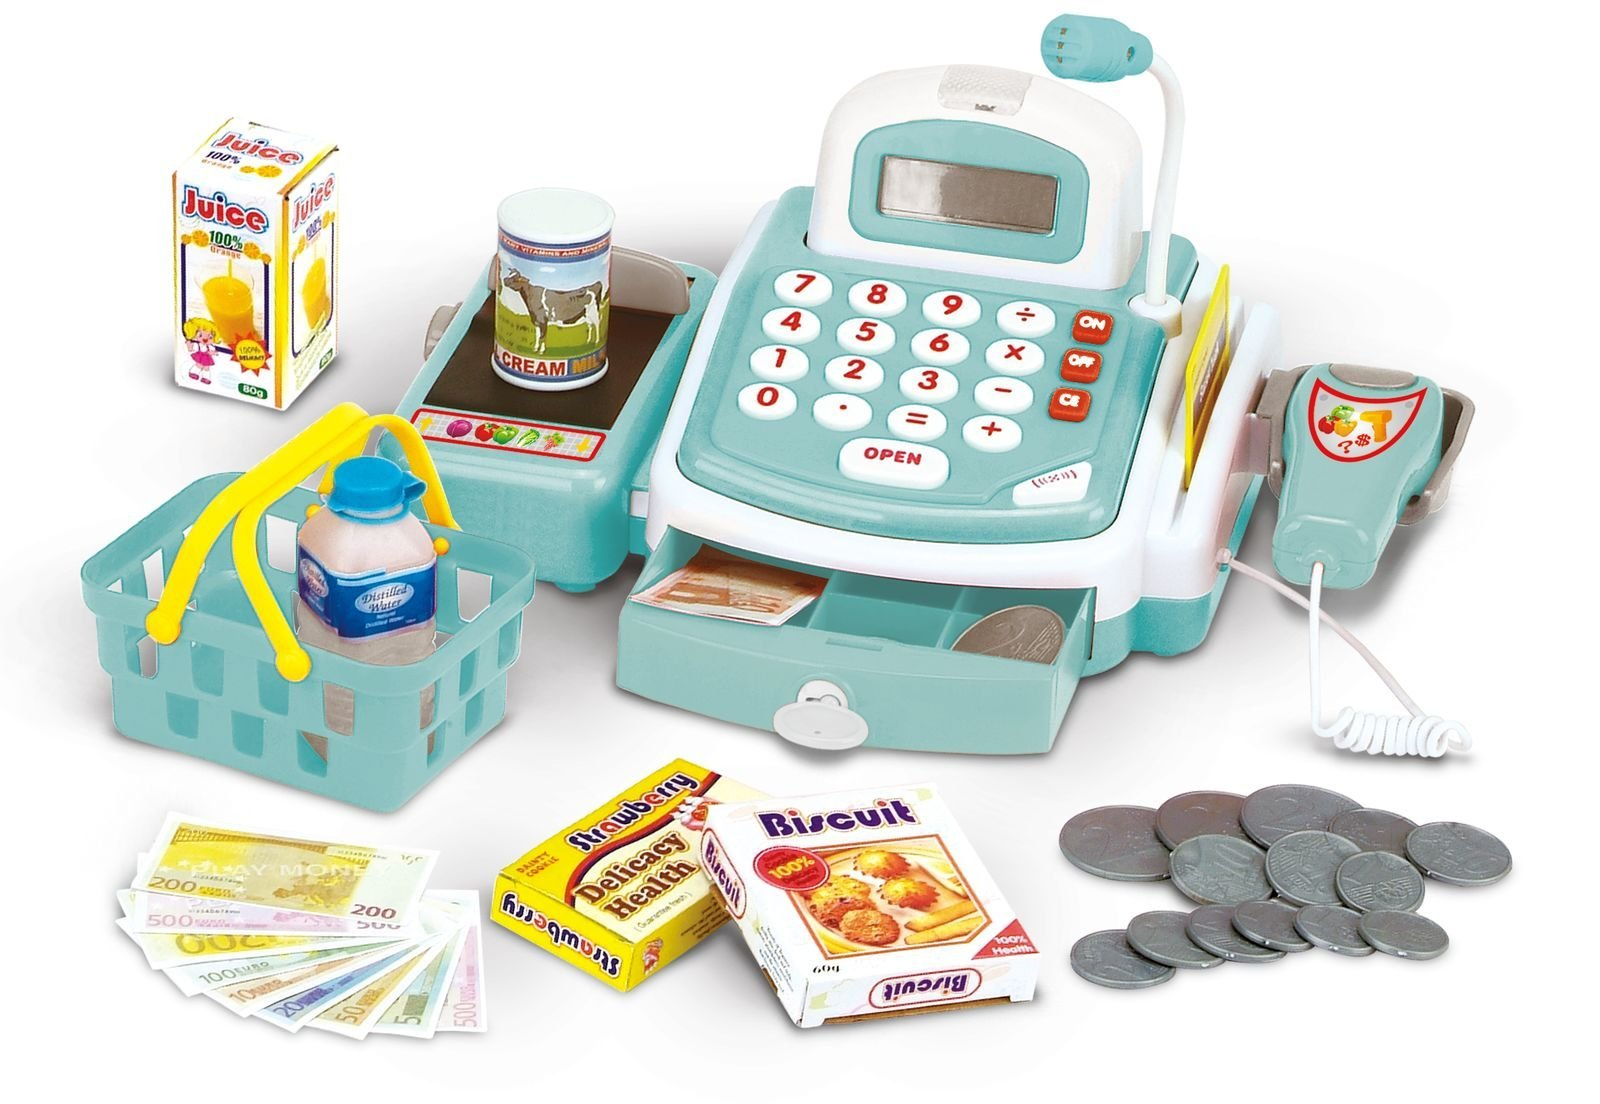 3-2-6 - Large cash register with lights, sound and accessories (68246)